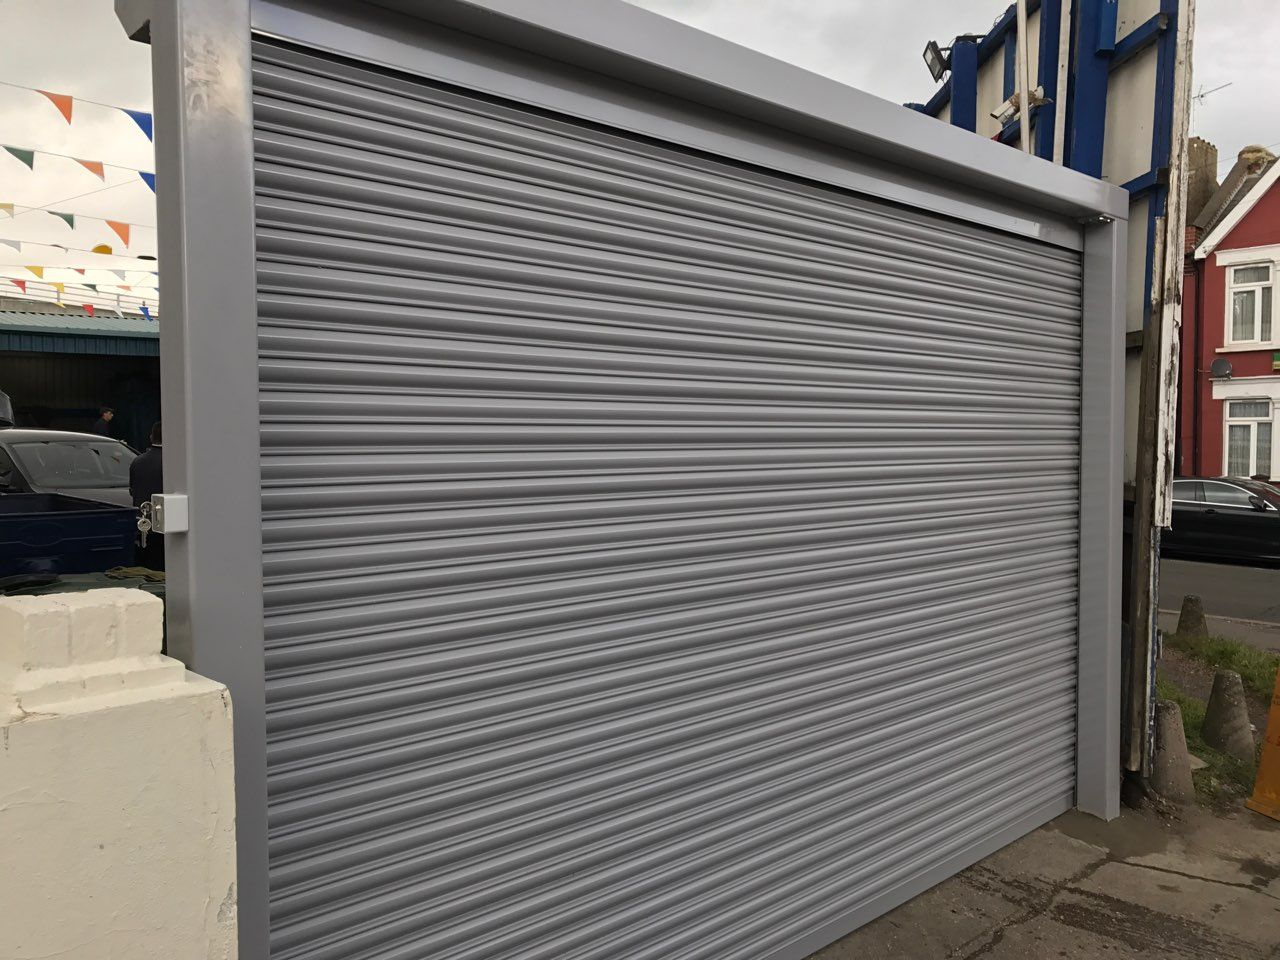 Happy Client With Our Rsg5000 Solid Steel Security Shutter With Goal Post Fitted To His Car Wash Company In Harrow Roller Shutters Shutters Security Shutters